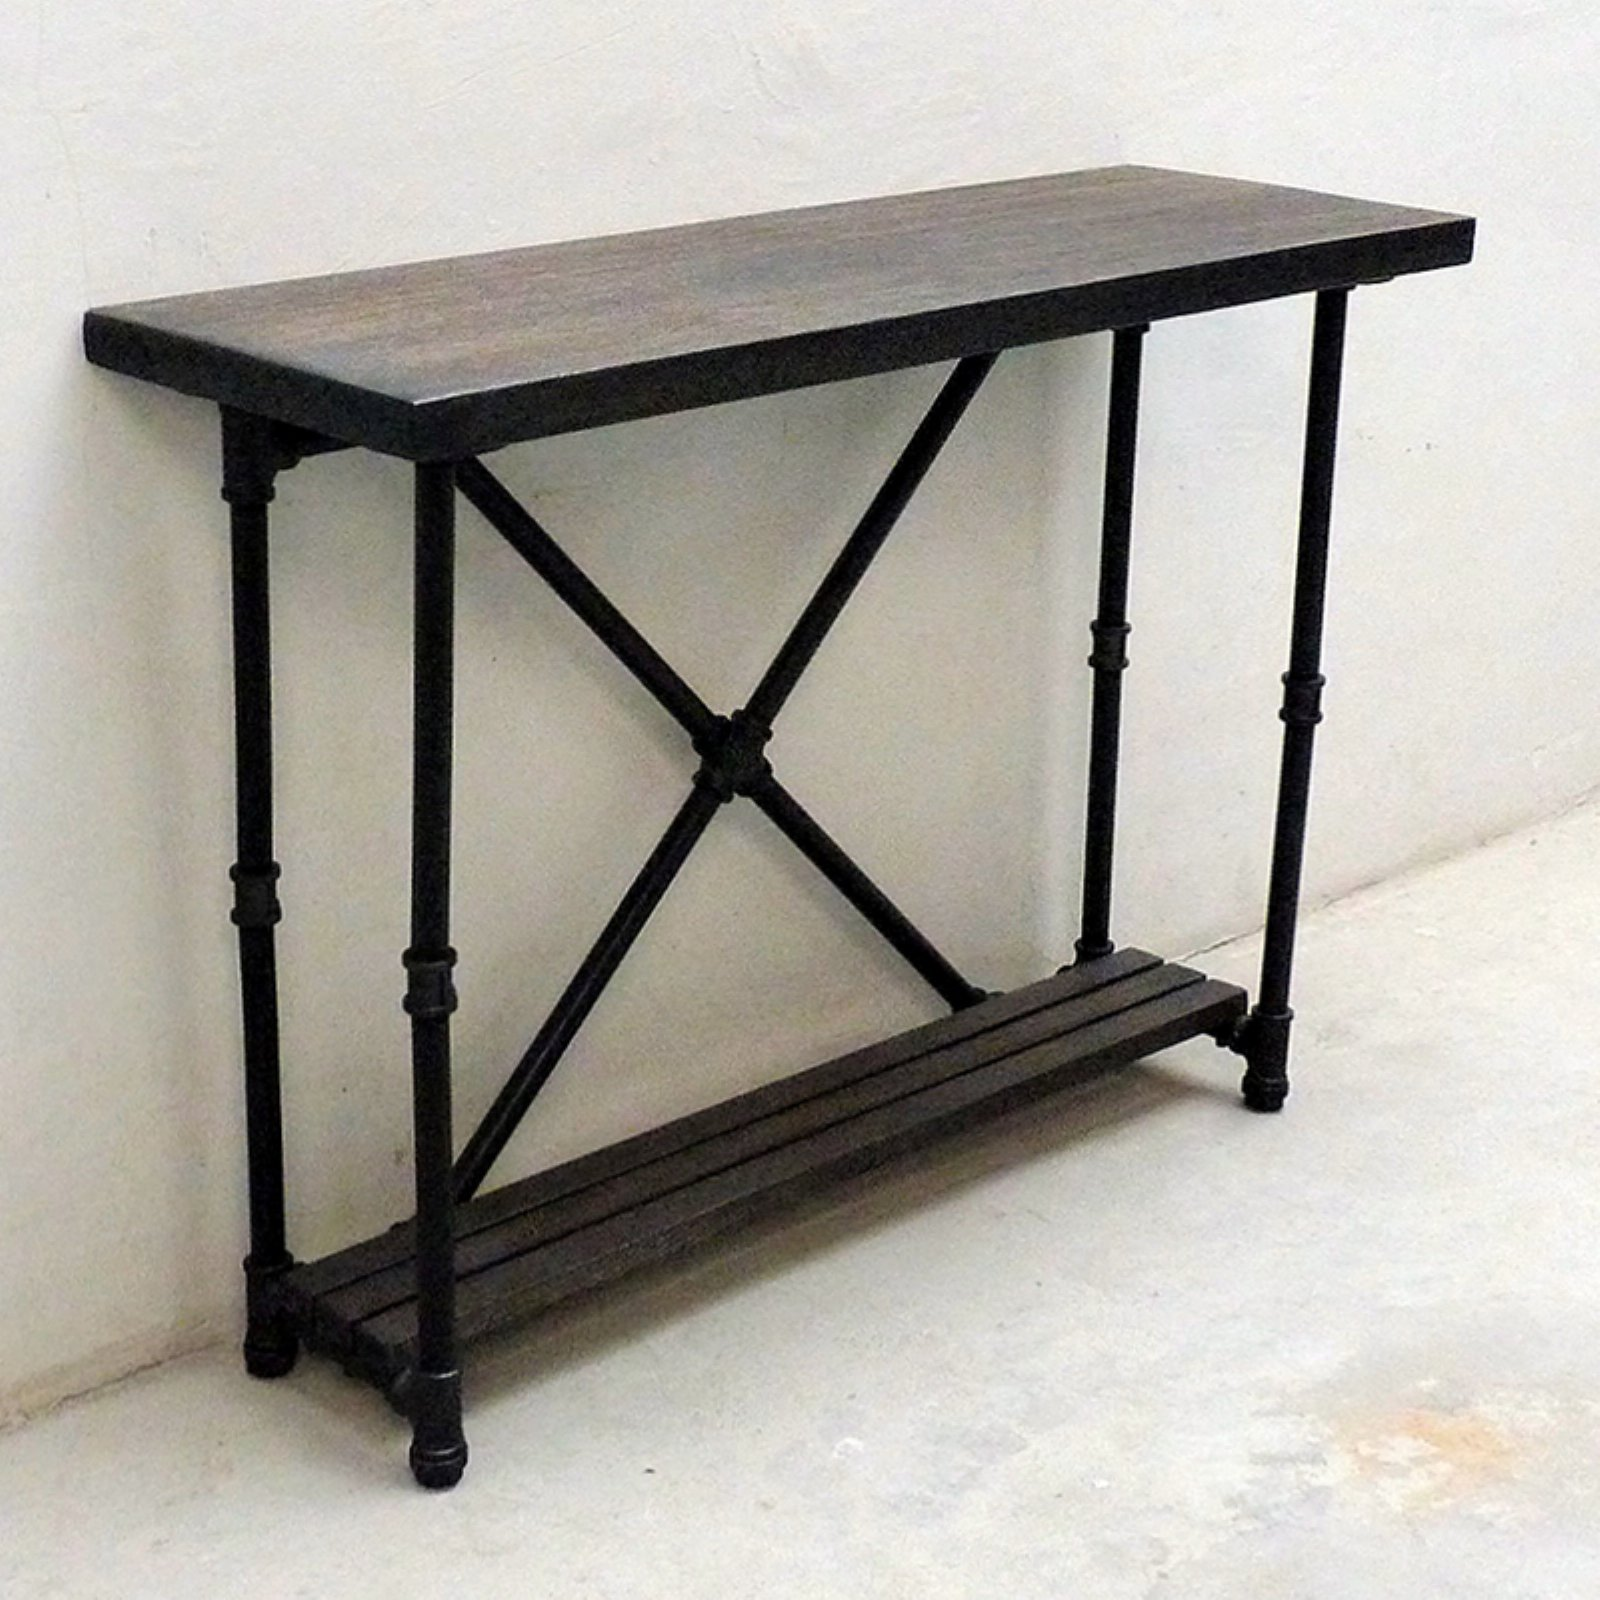 Ordinaire Furniture Pipeline Houston Industrial Console Table